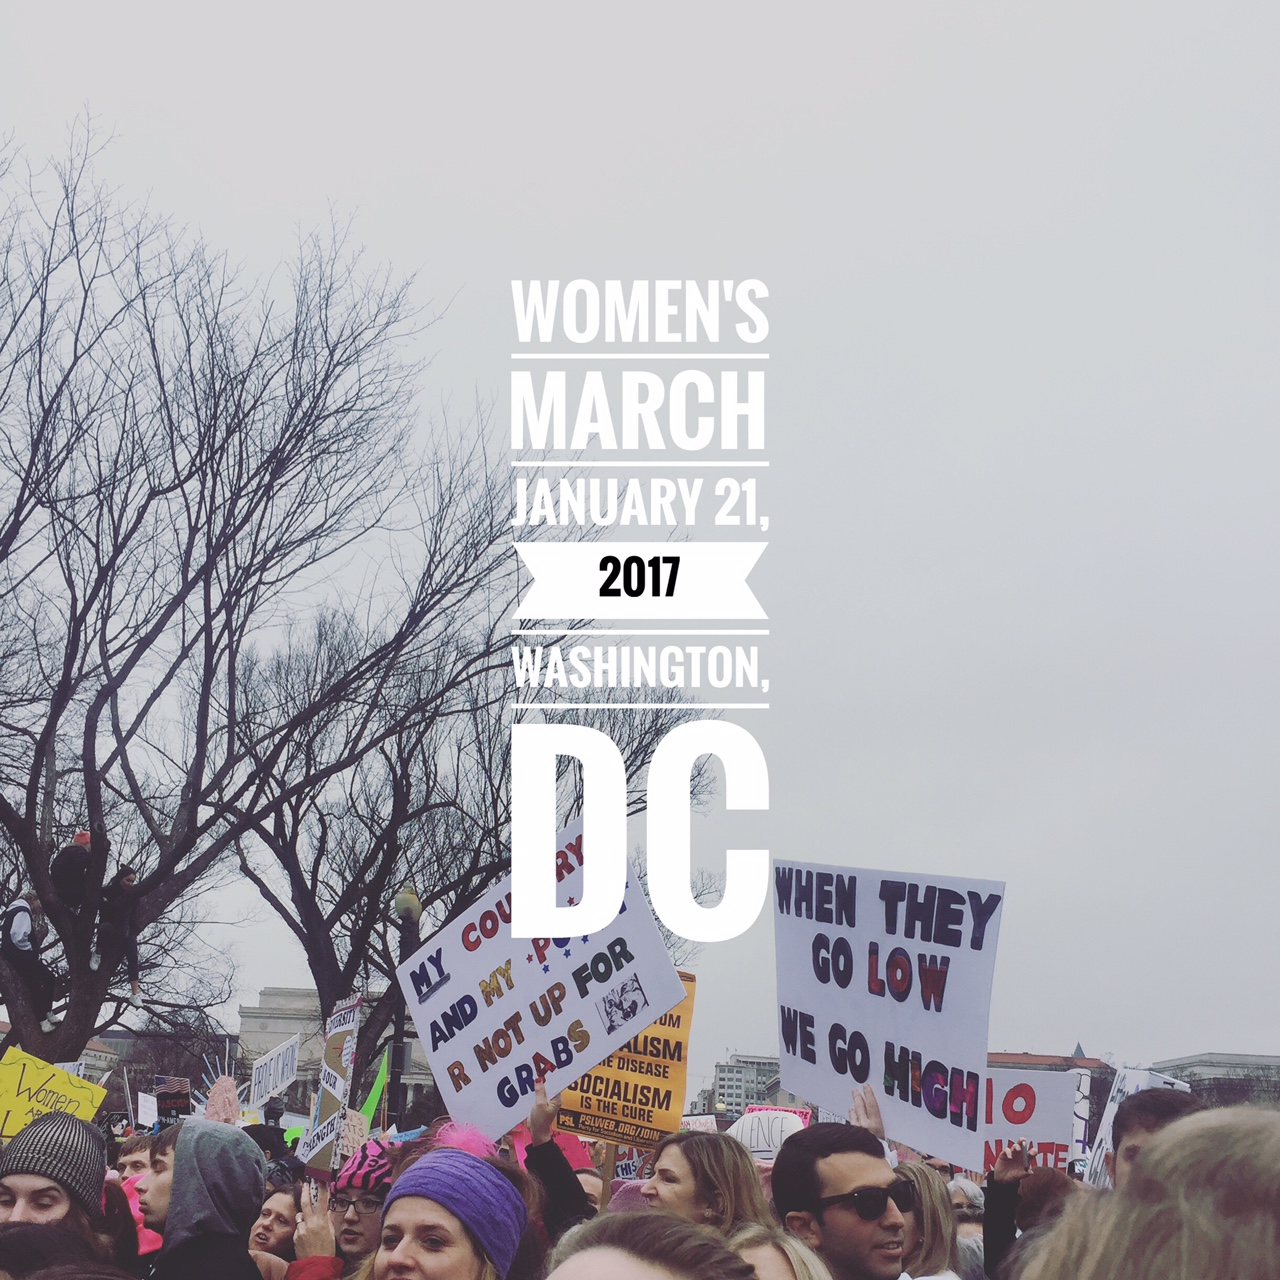 The TASC Group at the Women's March